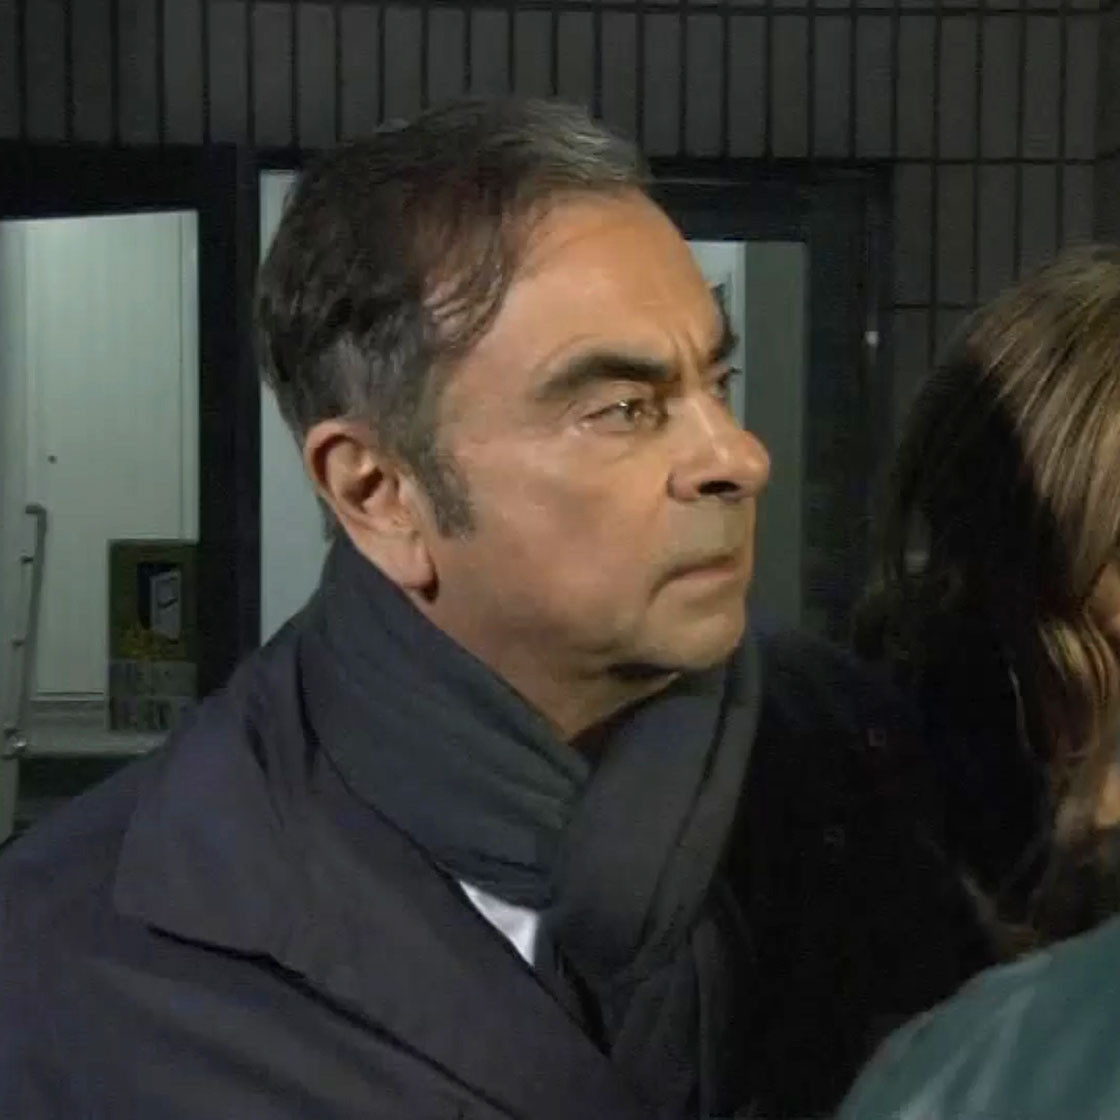 Mystery swirls around Ghosn escape